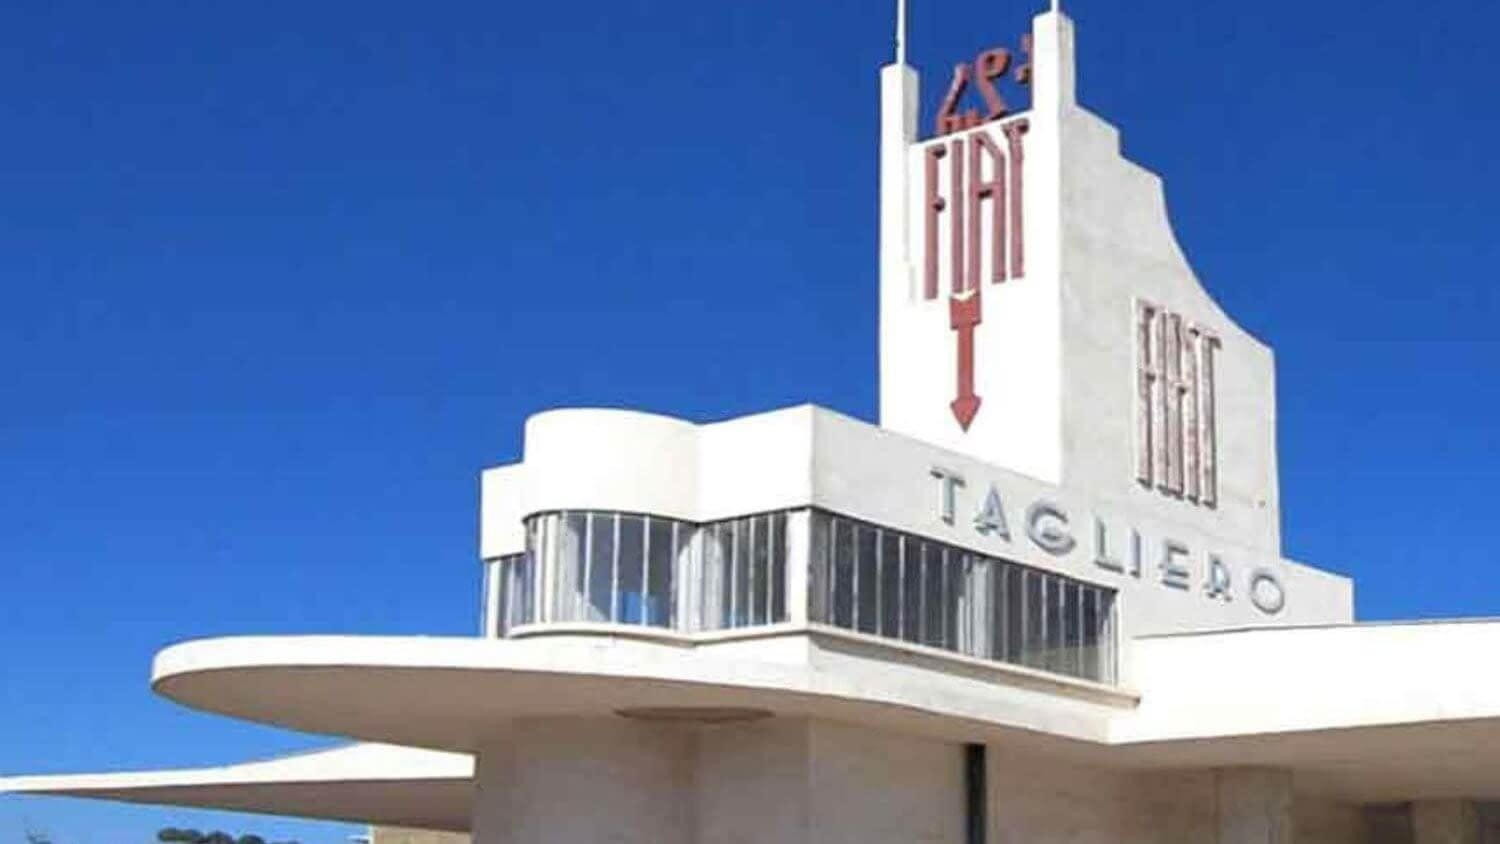 Fiat Tagliero Building - things to see and do in Eritrea